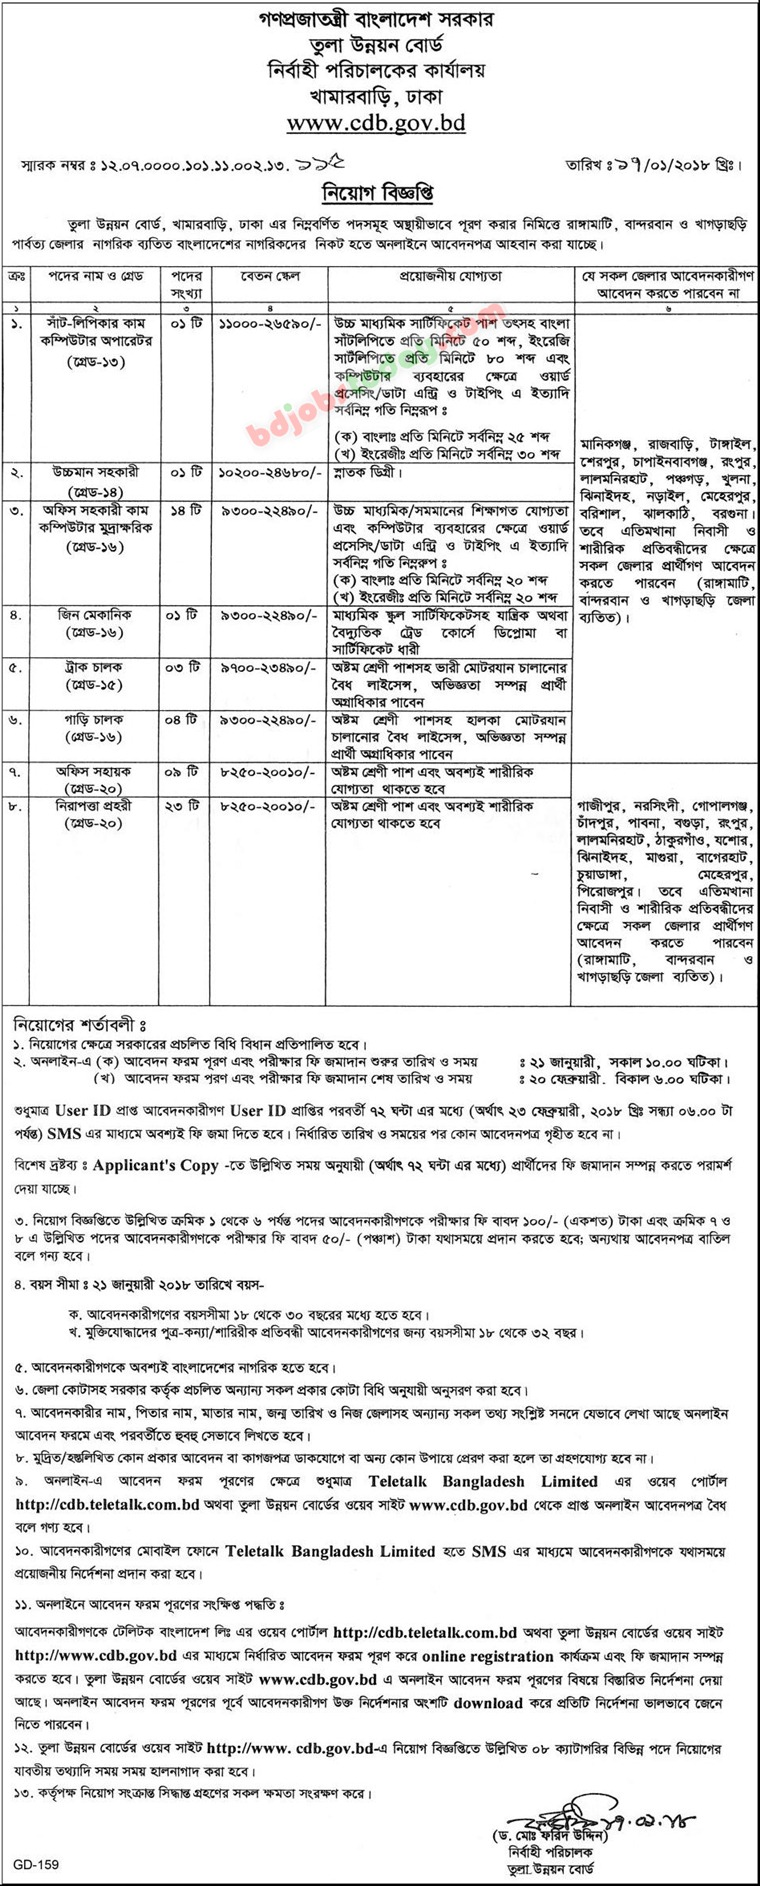 Cotton Development Board jobs